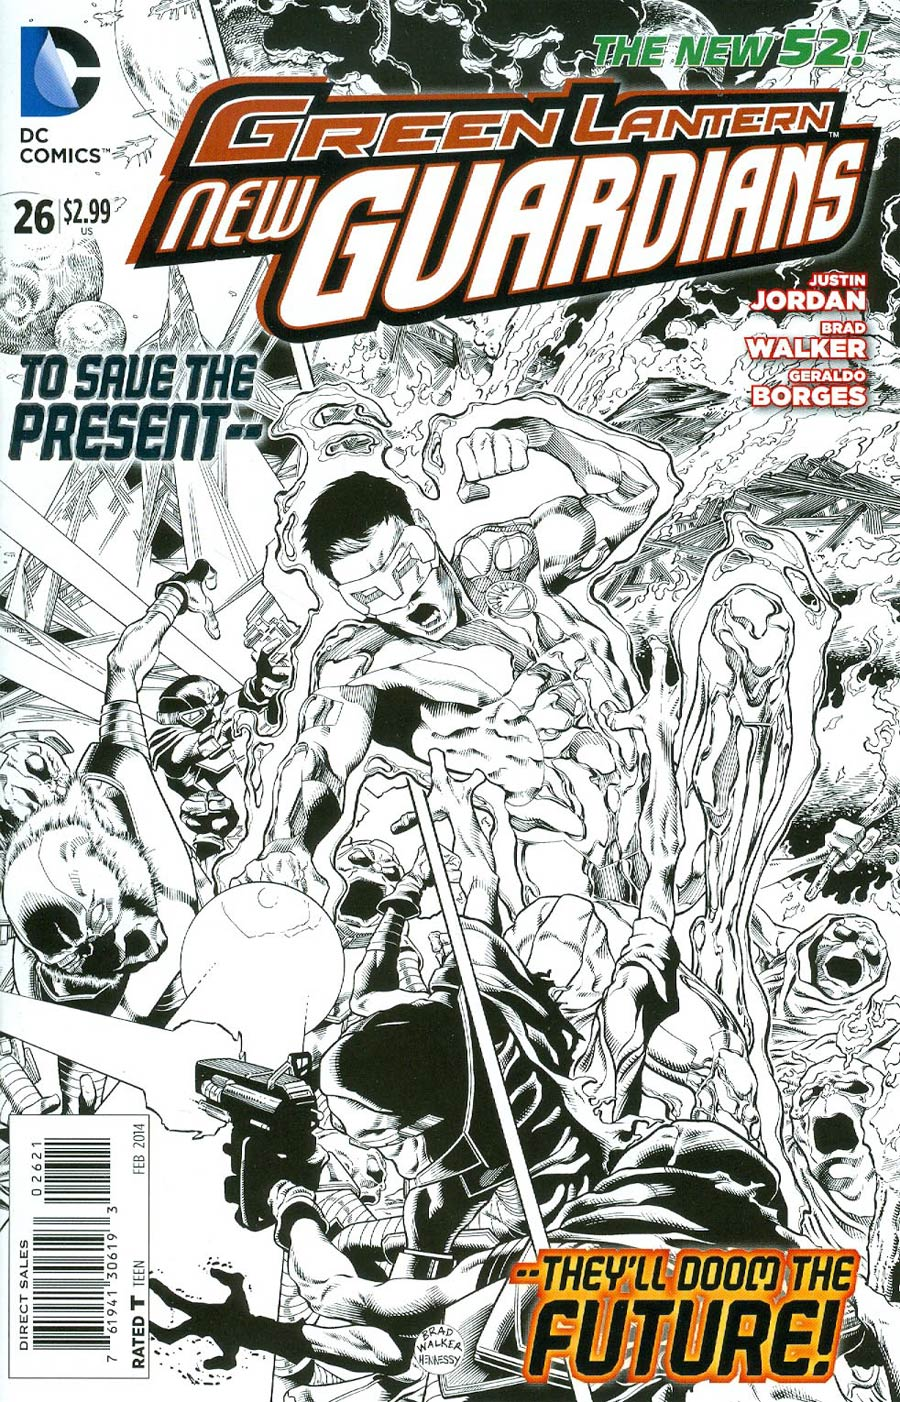 Green Lantern New Guardians #26 Cover B Incentive Brad Walker Sketch Cover